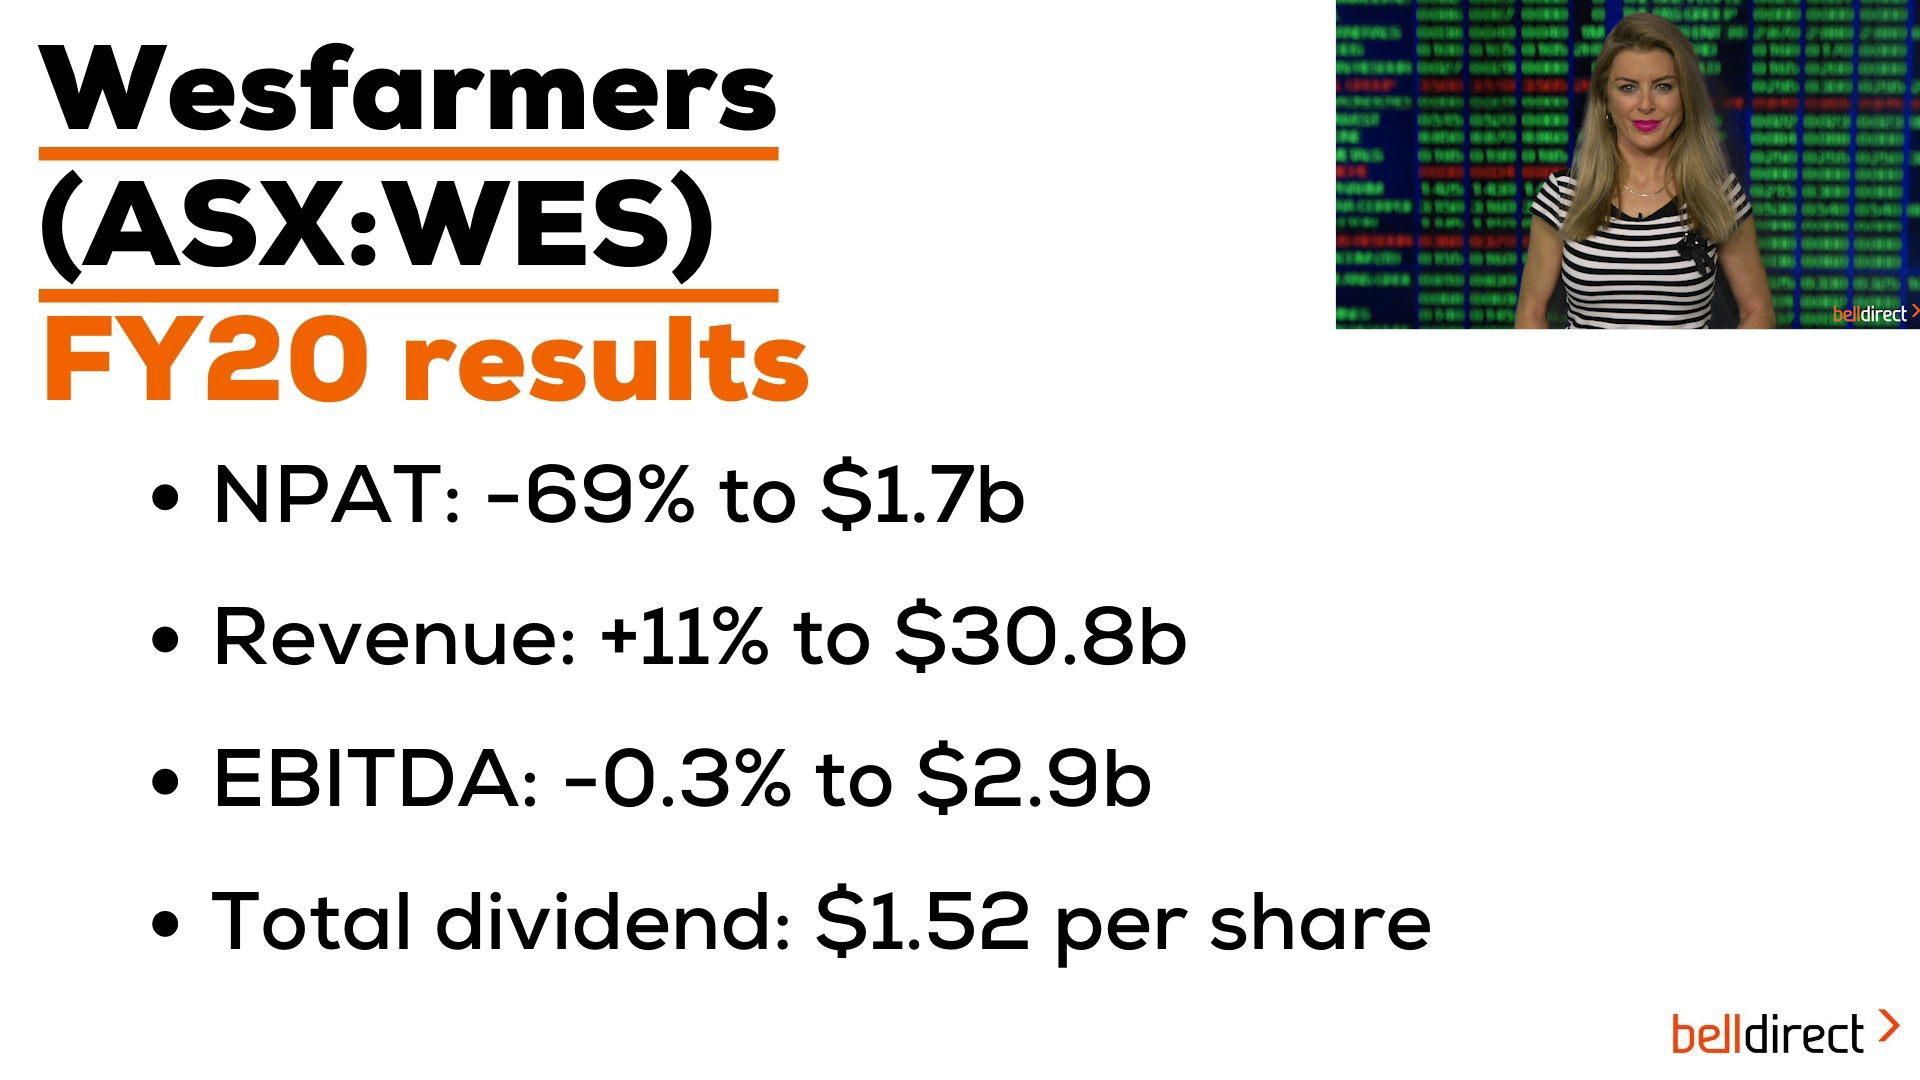 How did the sale of Coles affect Wesfarmers' profit?